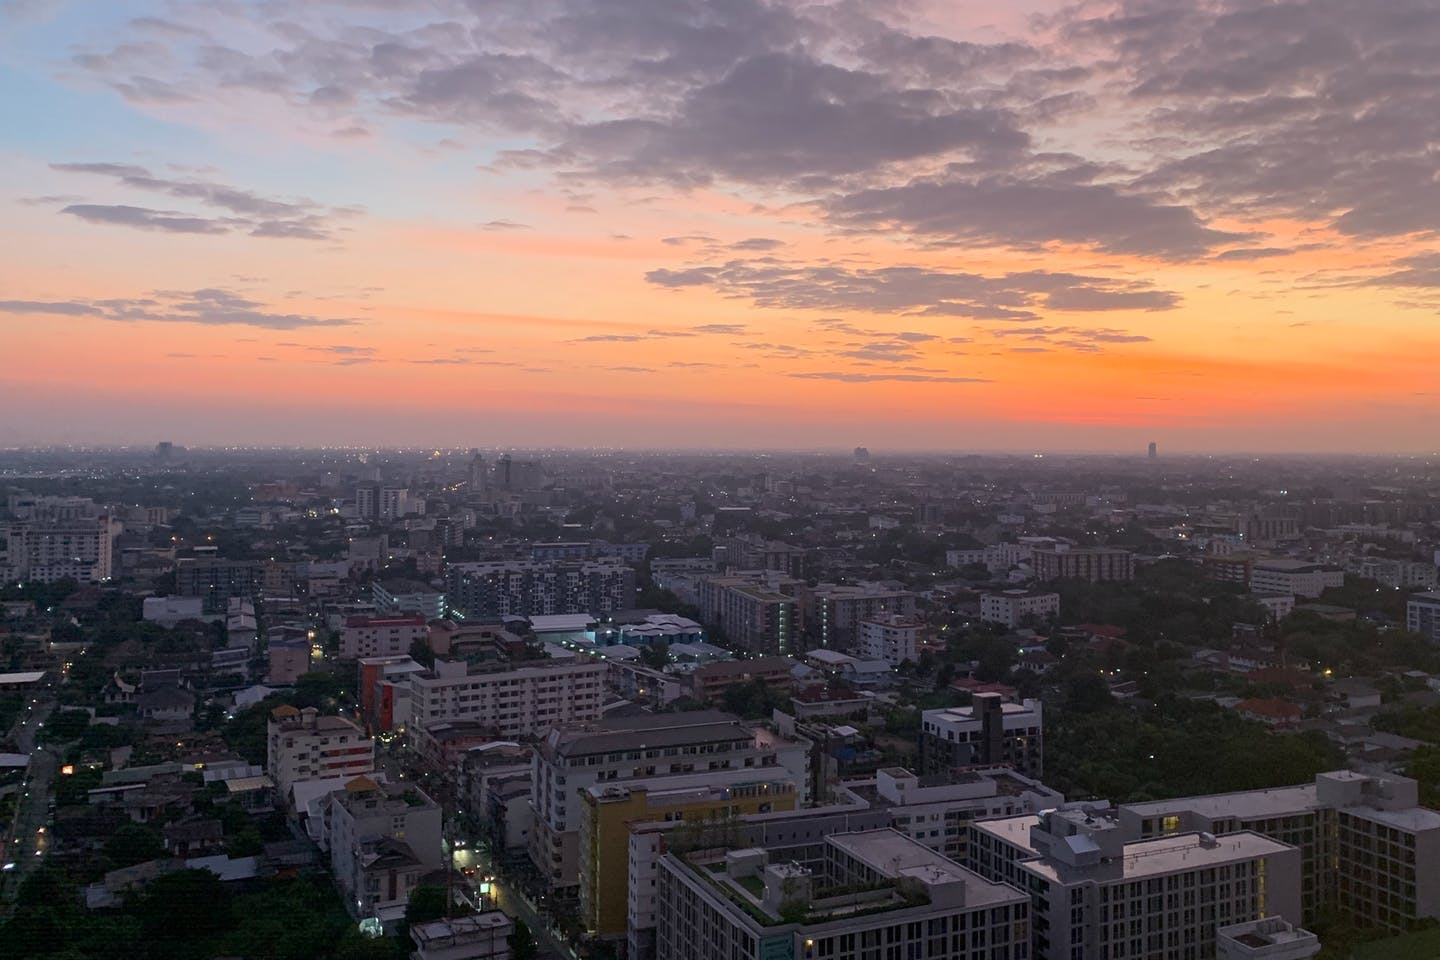 Sunrise in Bangkok, one of Southeast Asia's most climate-vulnerable cities.